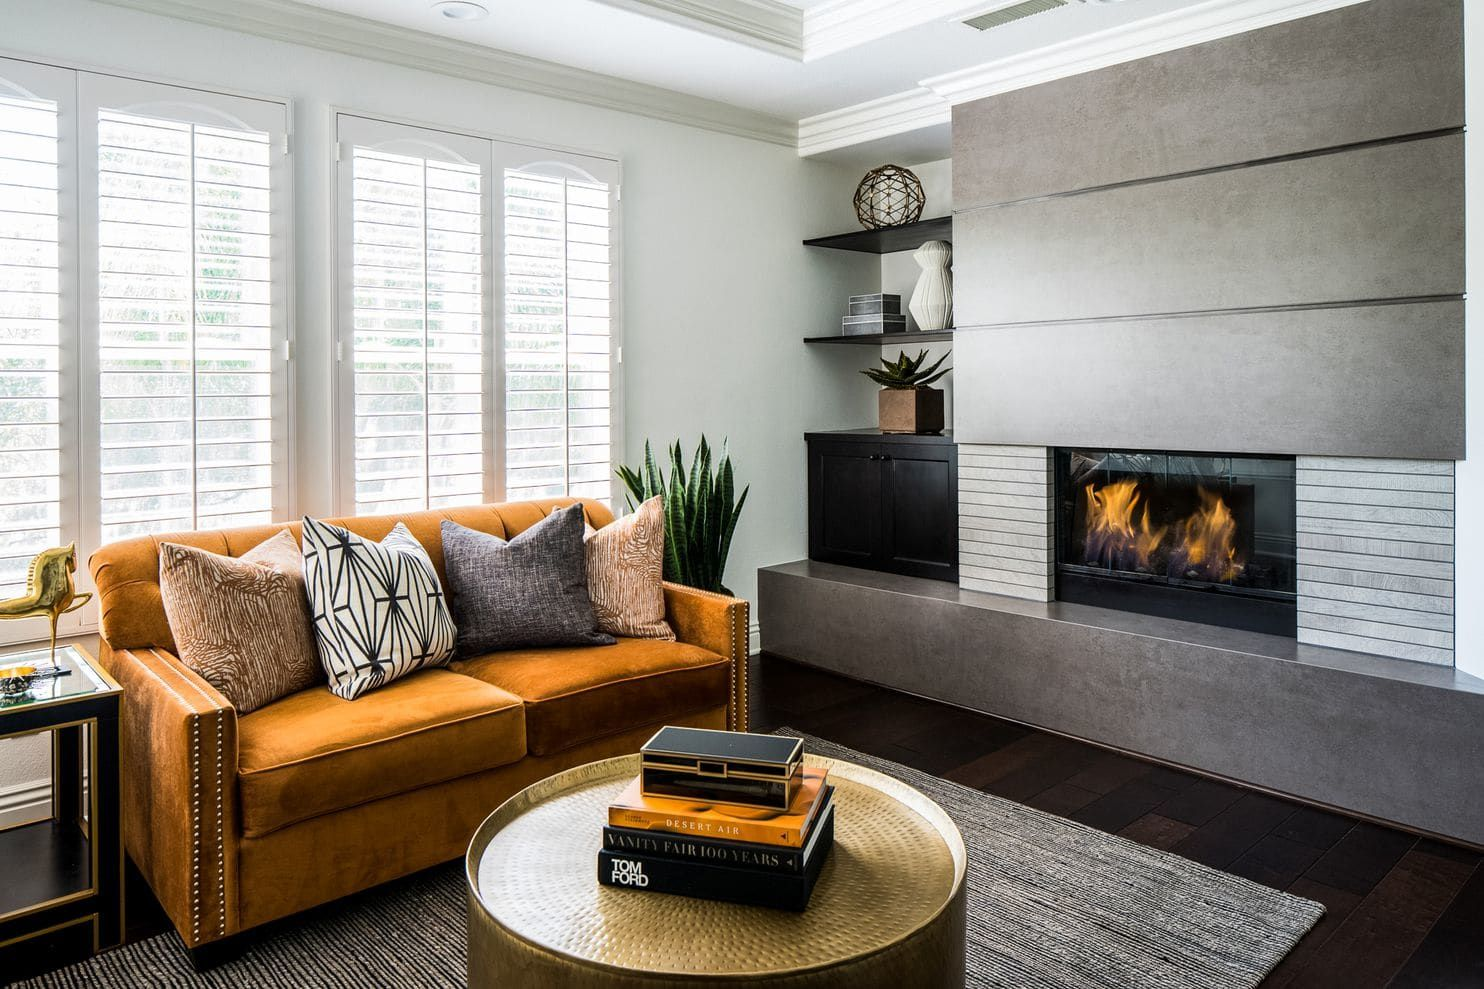 10 home design trends to watch out for in 10, according to Houzz ...